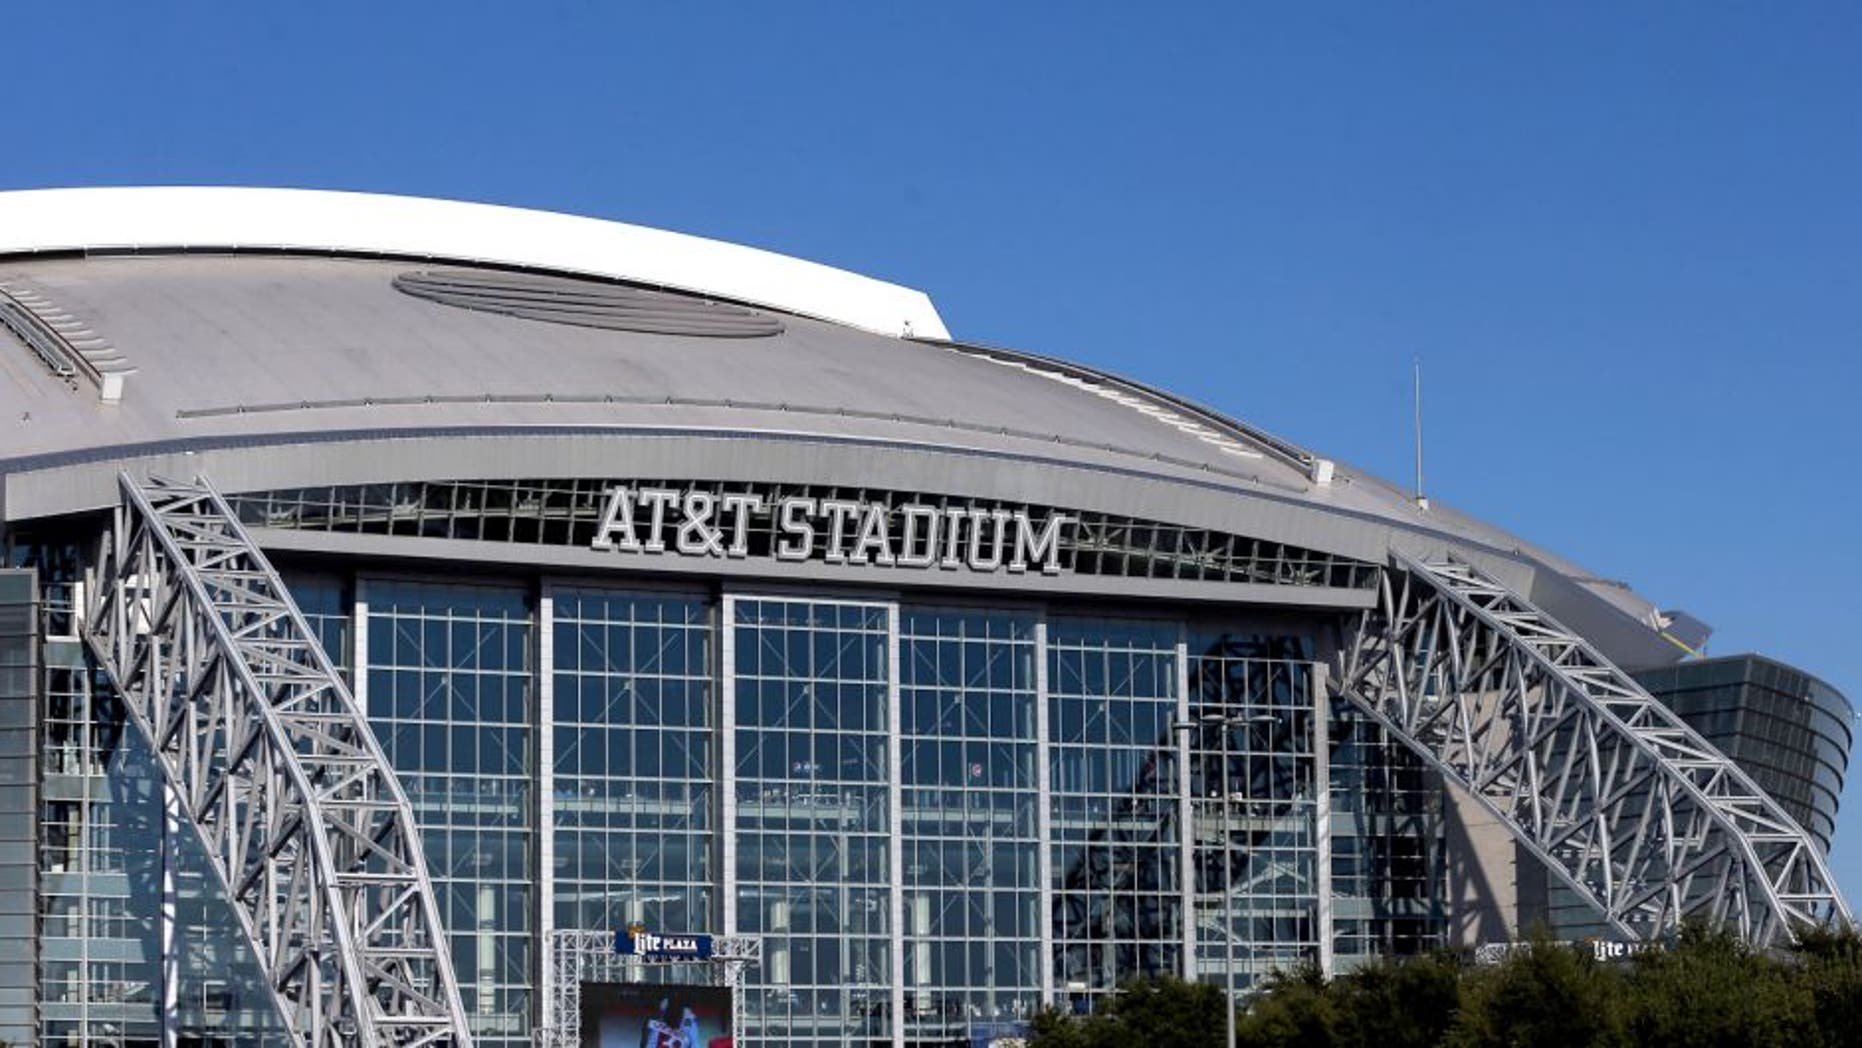 ARLINGTON, TX - SEPTEMBER 13: A general view of AT&T Stadium before a game between the New York Giants and the Dallas Cowboys on September 13, 2015 in Arlington, Texas. (Photo by Ronald Martinez/Getty Images)